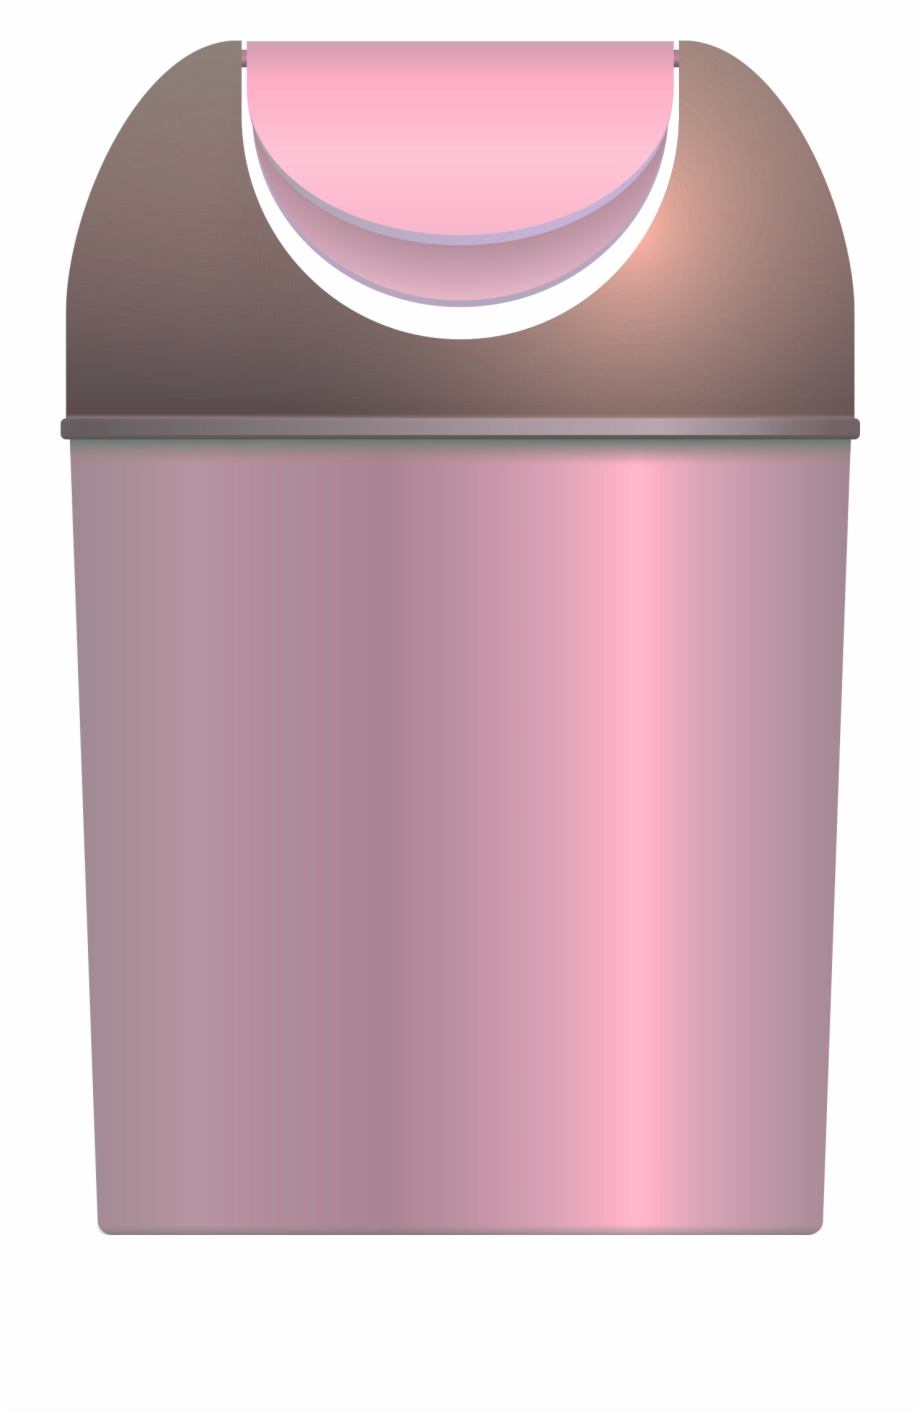 Garbage Can Vector Png Transparent Image.